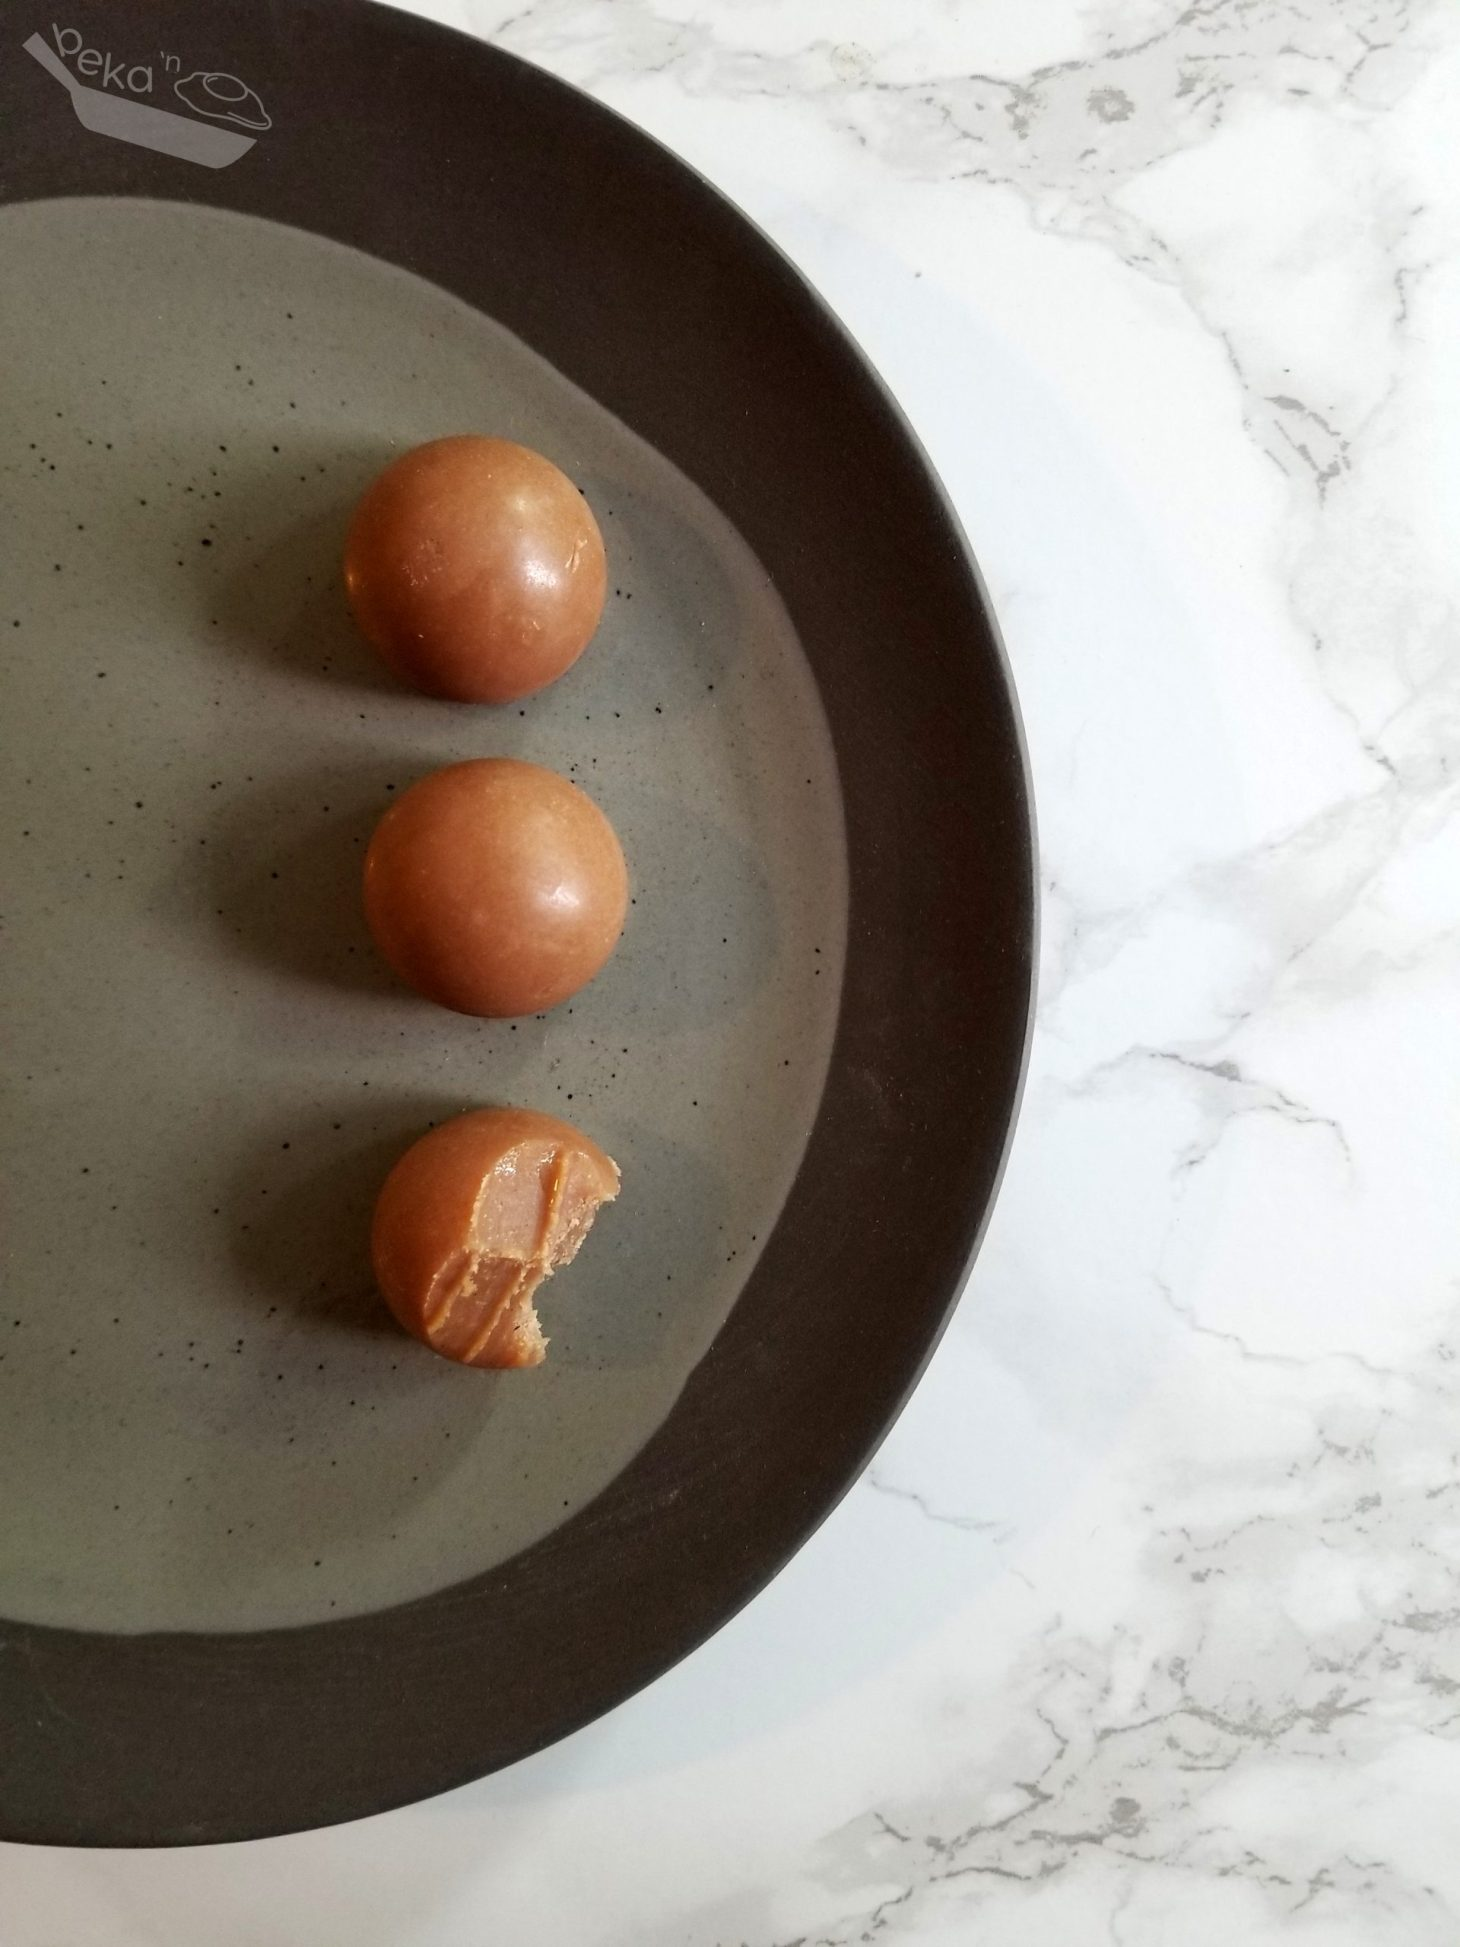 An overhead shot of three salted caramel bites on a gray textured plate on a white marble background. The bottom piece of fudge has a bite taken out of it.